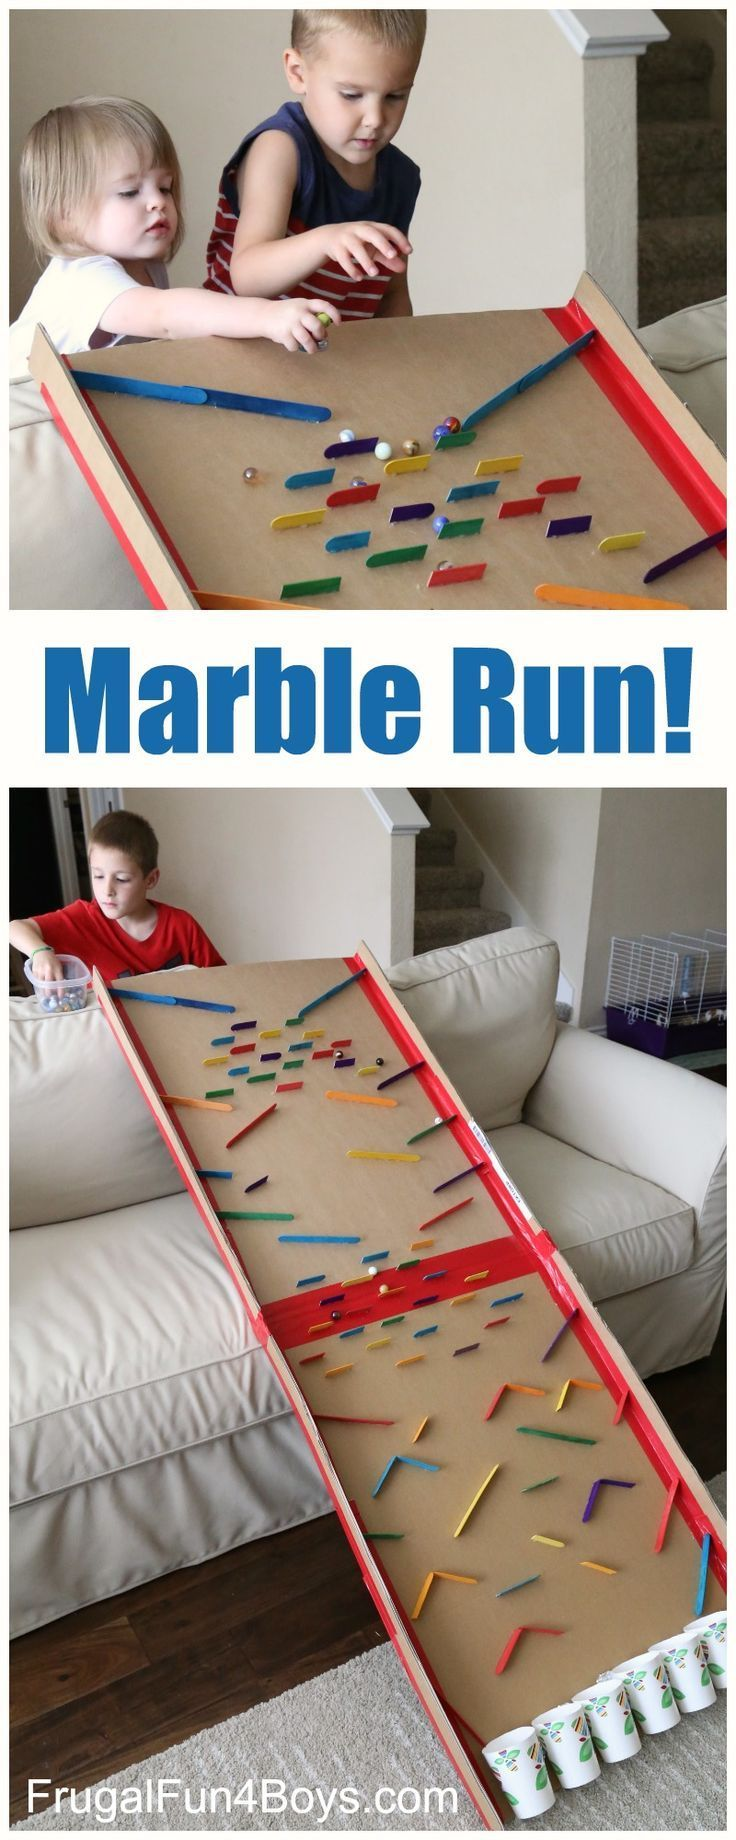 Turn A Cardboard Box Into An Epic Marble Run Fun Group Group - Group guys build epic treehouse gaming